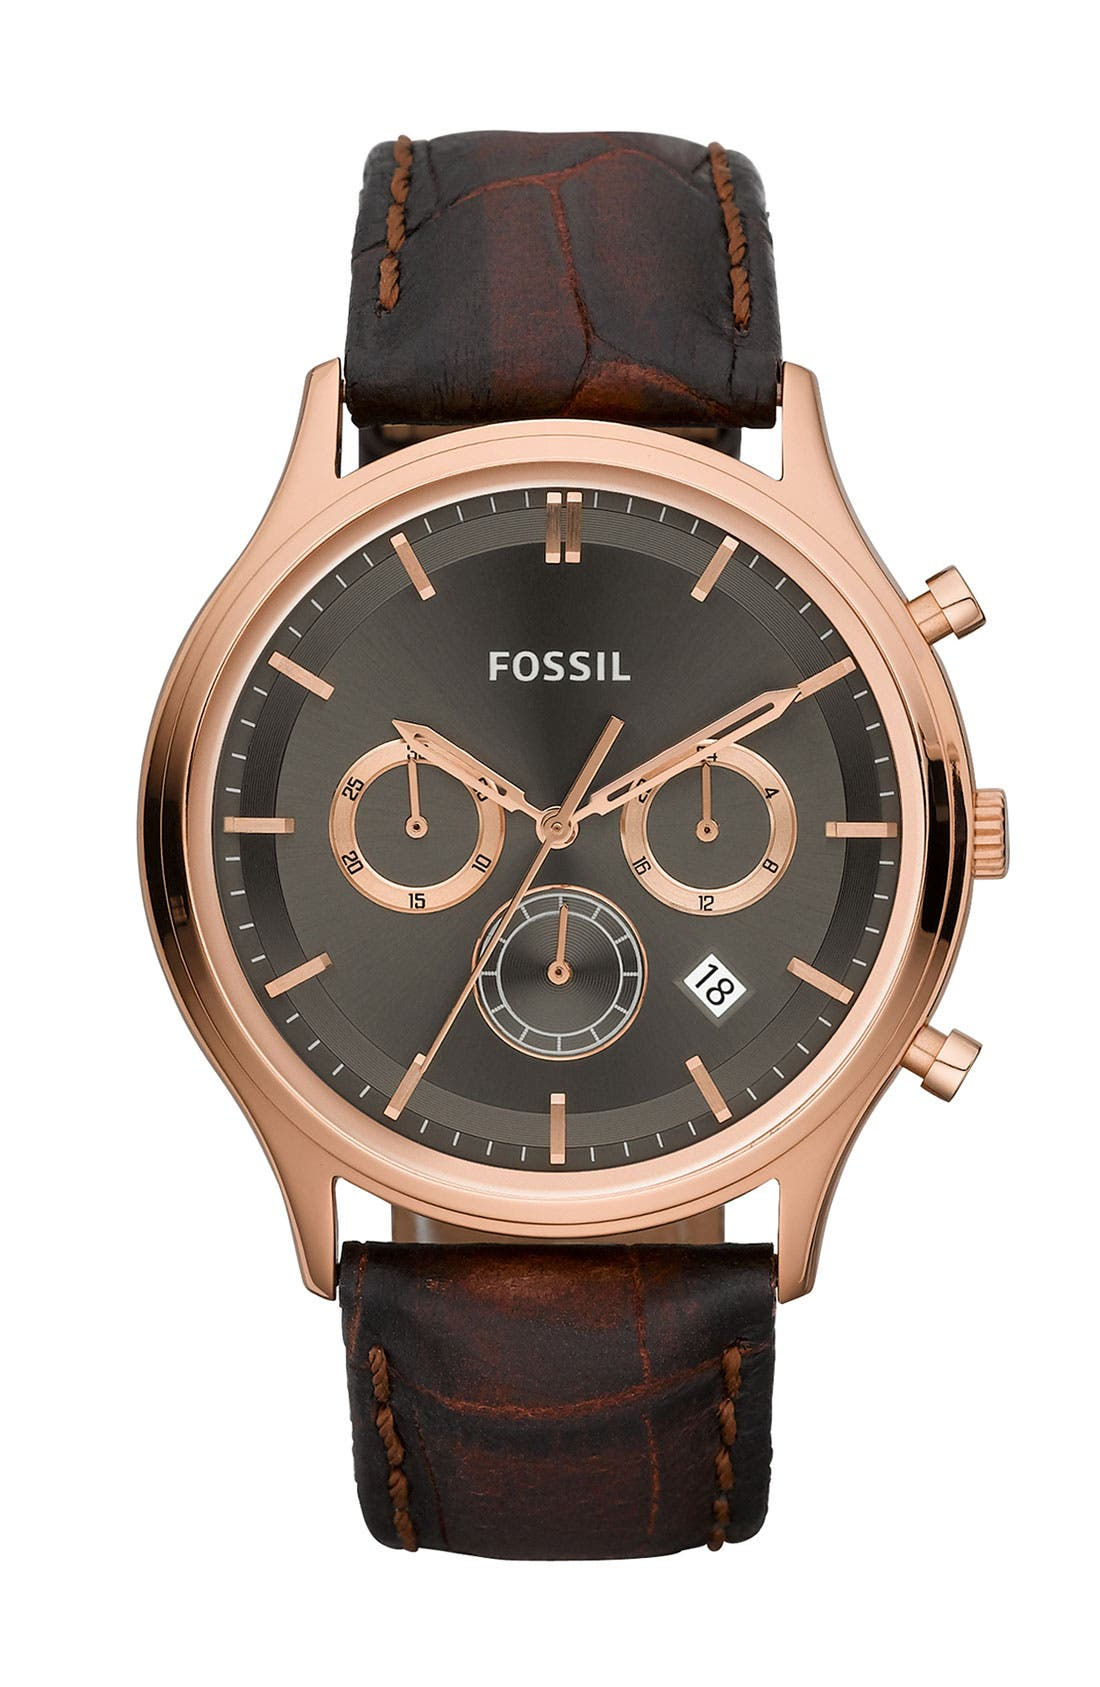 FOSSIL 'Ansel' Leather Strap Chronograph Watch, 41mm, Main, color, 200